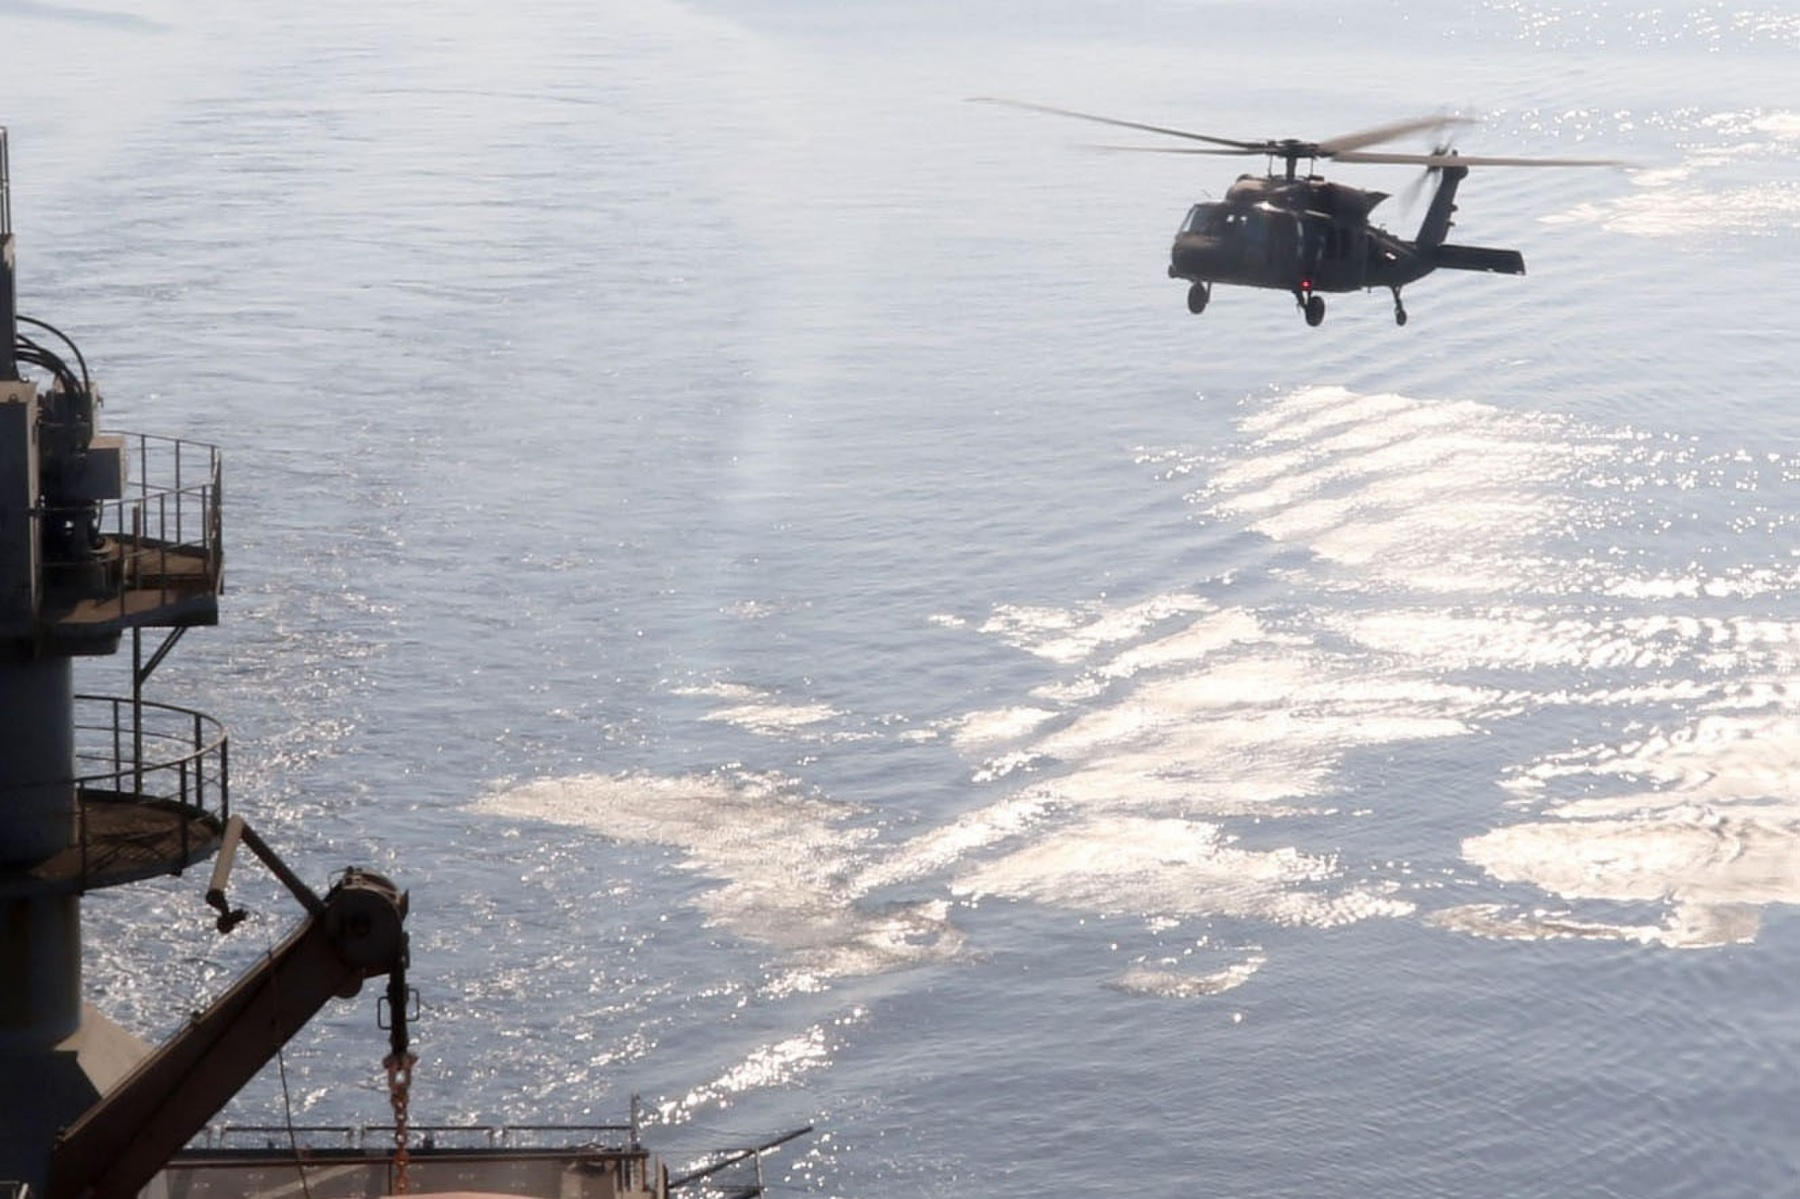 Soldiers assigned to Bravo and Headquarters Company, 1st Brigade, 147th Air Assault Helicopter Battalion, and 2nd Brigade, 149th Air General Support Aviation Battalion, conduct a deck landing qualification with a UH-60 Black Hawk on a U.S. Navy ship on Aug. 9, 2017, in the Arabian Gulf. The Black Hawk is one of the military systems developed in the 1970s known as the Big Six. It remains a core element of the Army's military power today. (U.S. Army photo by Staff Sgt. Jeremy Miller, 35th Infantry Division)